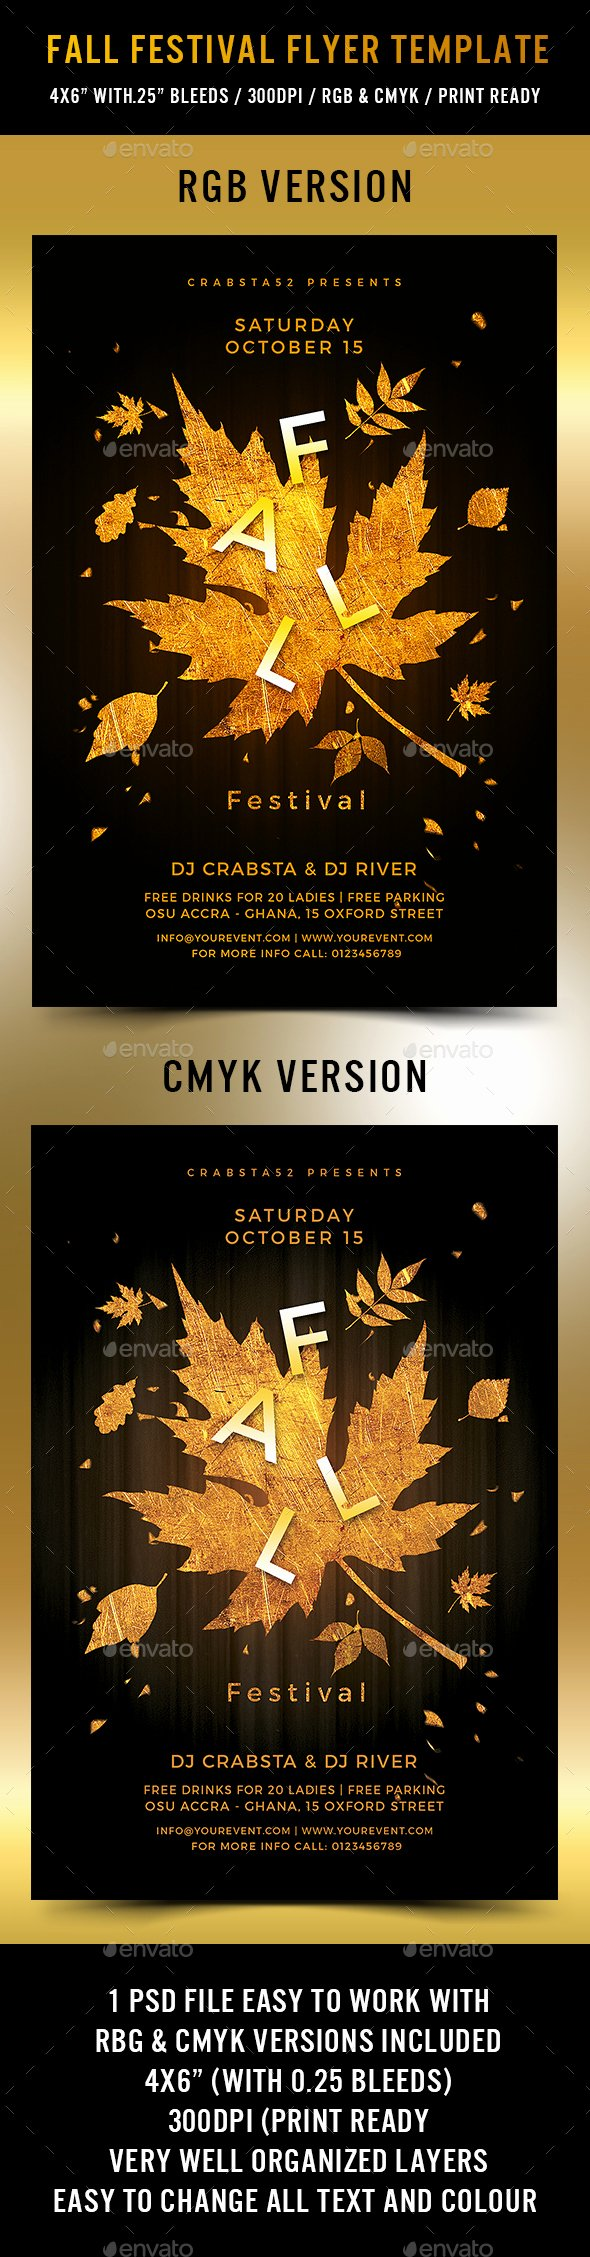 Fall Festival Flyer Template by Crabsta52